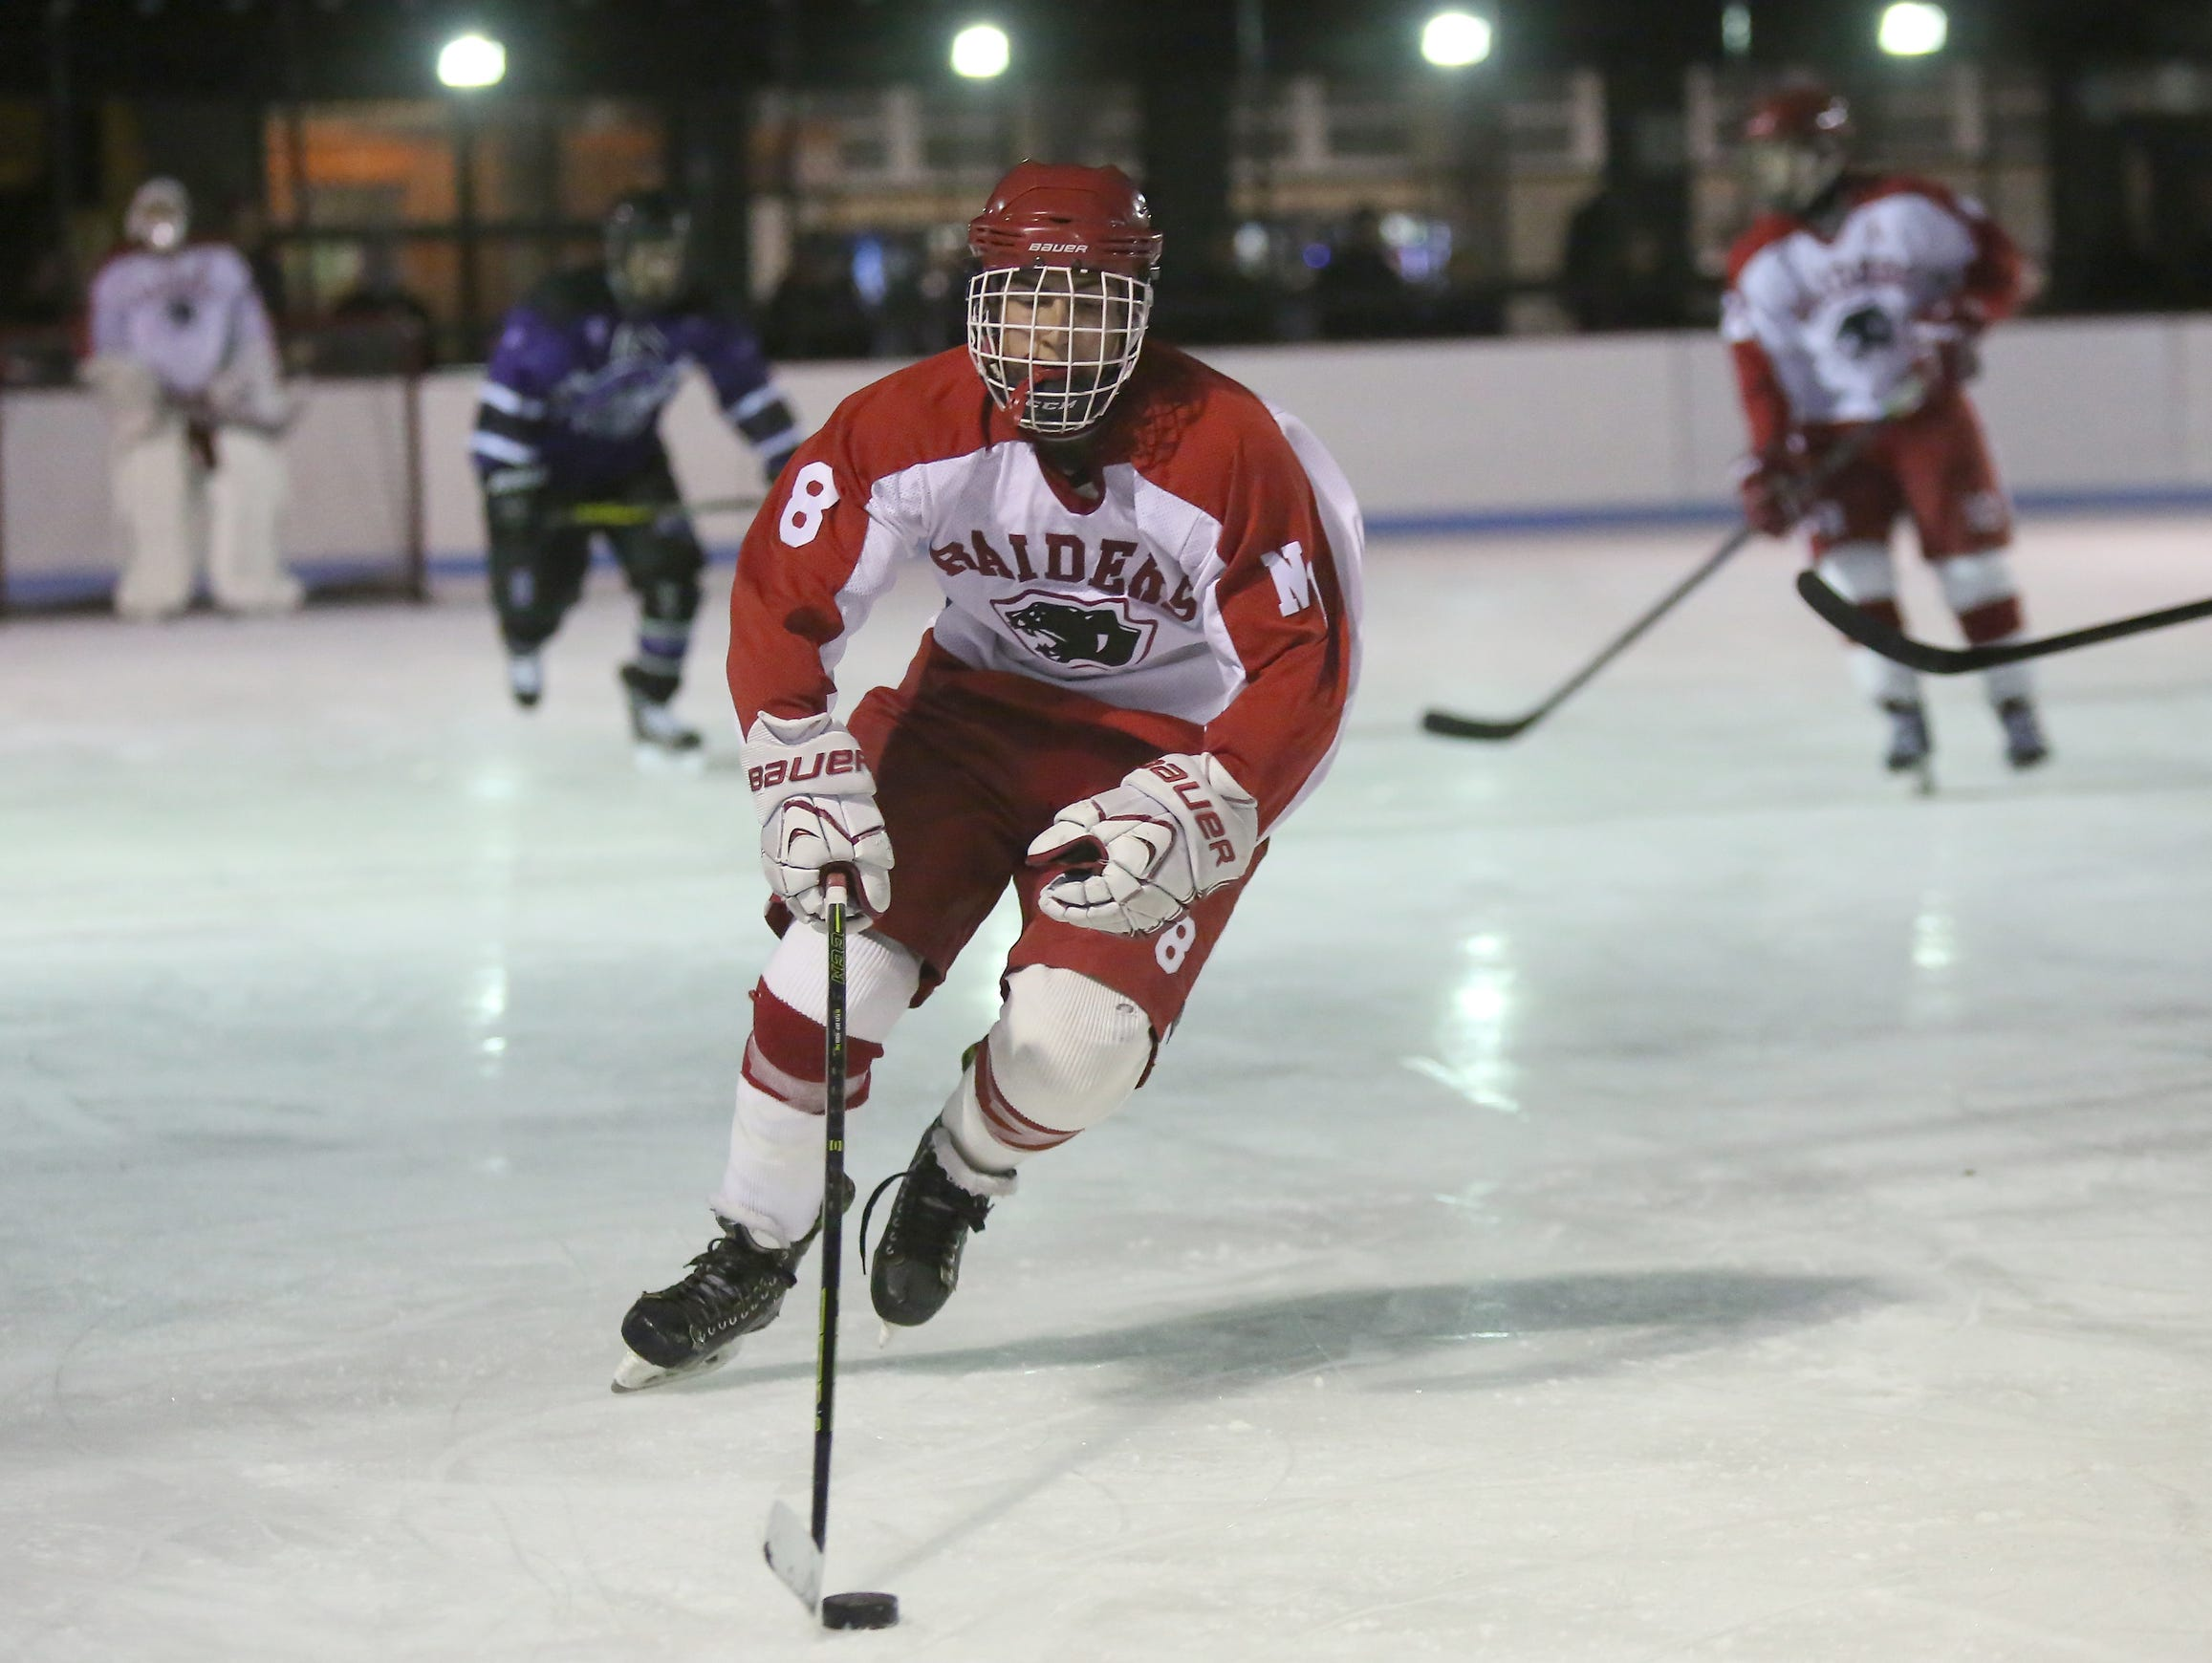 North Rockland's Justin Morina (8) skates the puck across the blue line during the first annual Winter Classic Hockey Tournament against Monroe-Woodbury at the Bear Mountain Ice Rink in Tompkins Cove on Friday, Dec. 18, 2015.